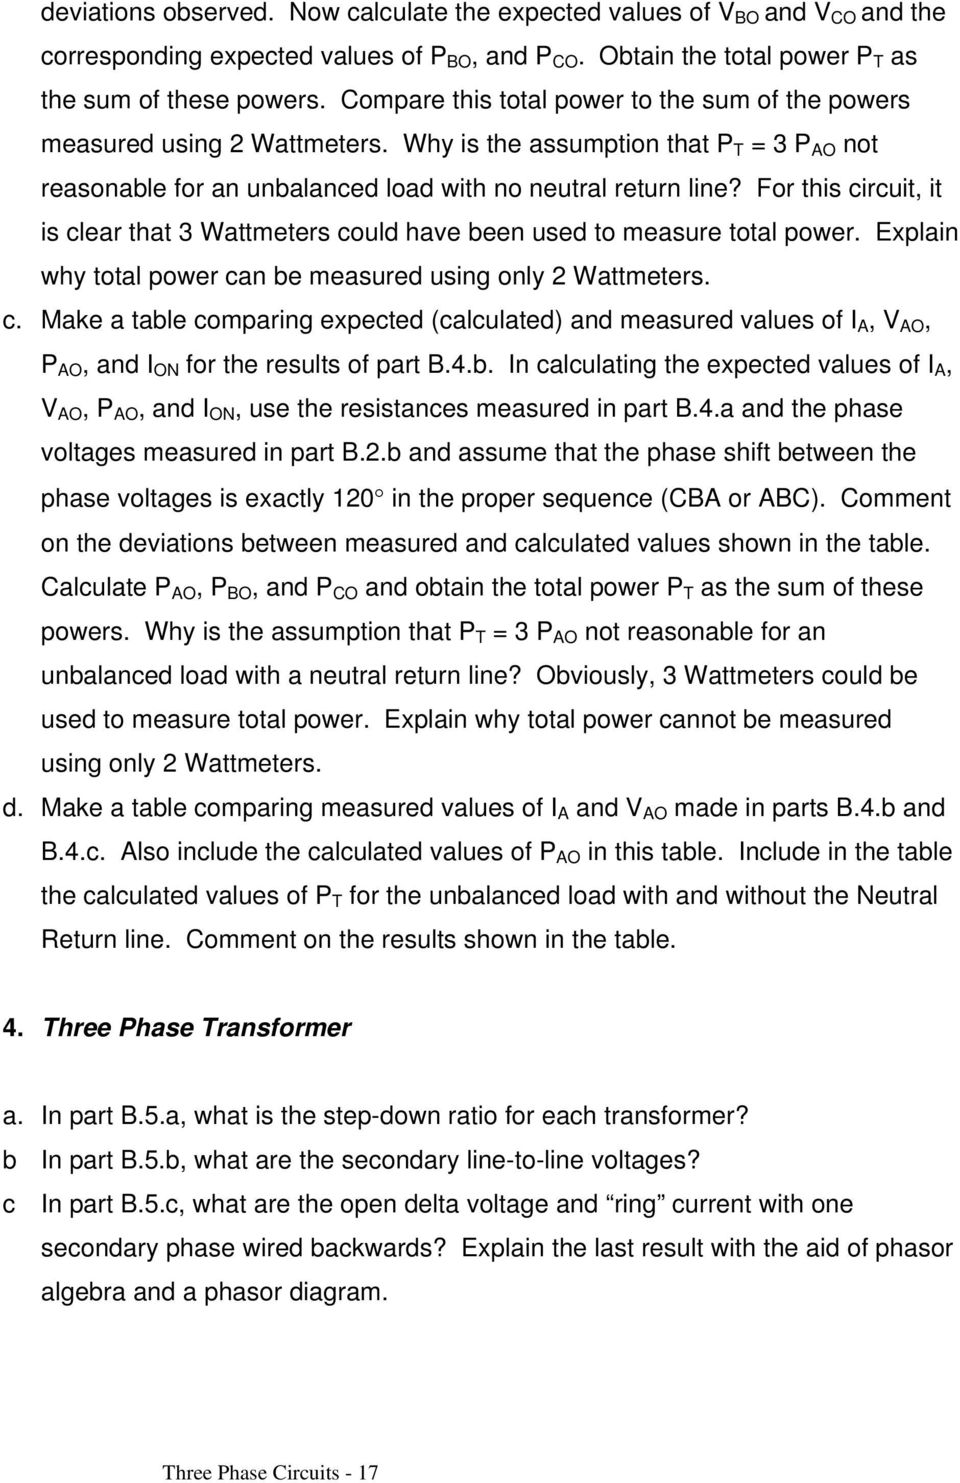 For this circuit, it is clear that 3 Wattmeters could have been used to measure total power. Explain why total power can be measured using only 2 Wattmeters. c. Make a table comparing expected (calculated) and measured values of I A, V AO, P AO, and I ON for the results of part B.